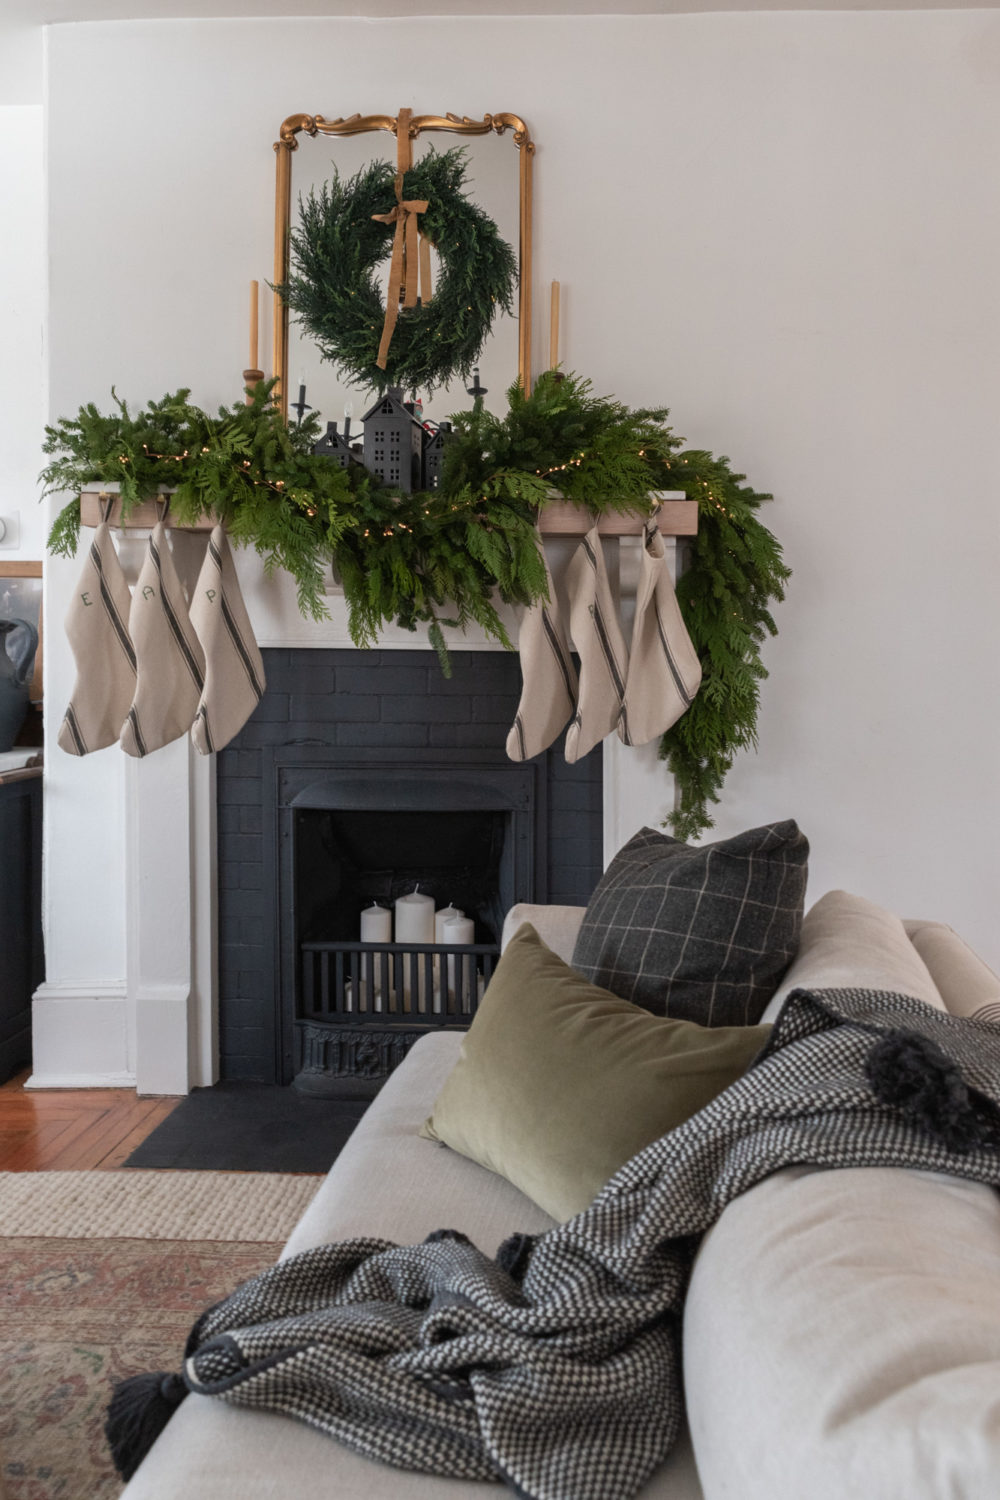 The Wild Decoelis | How To Make Flour Sack Stockings | sewing instructions | fresh fir and cedar garland on fireplace mantle with twinkle lights. Antique coal burning fireplace with candles inside. Gold mirror and cedar wreath with gold ribbon